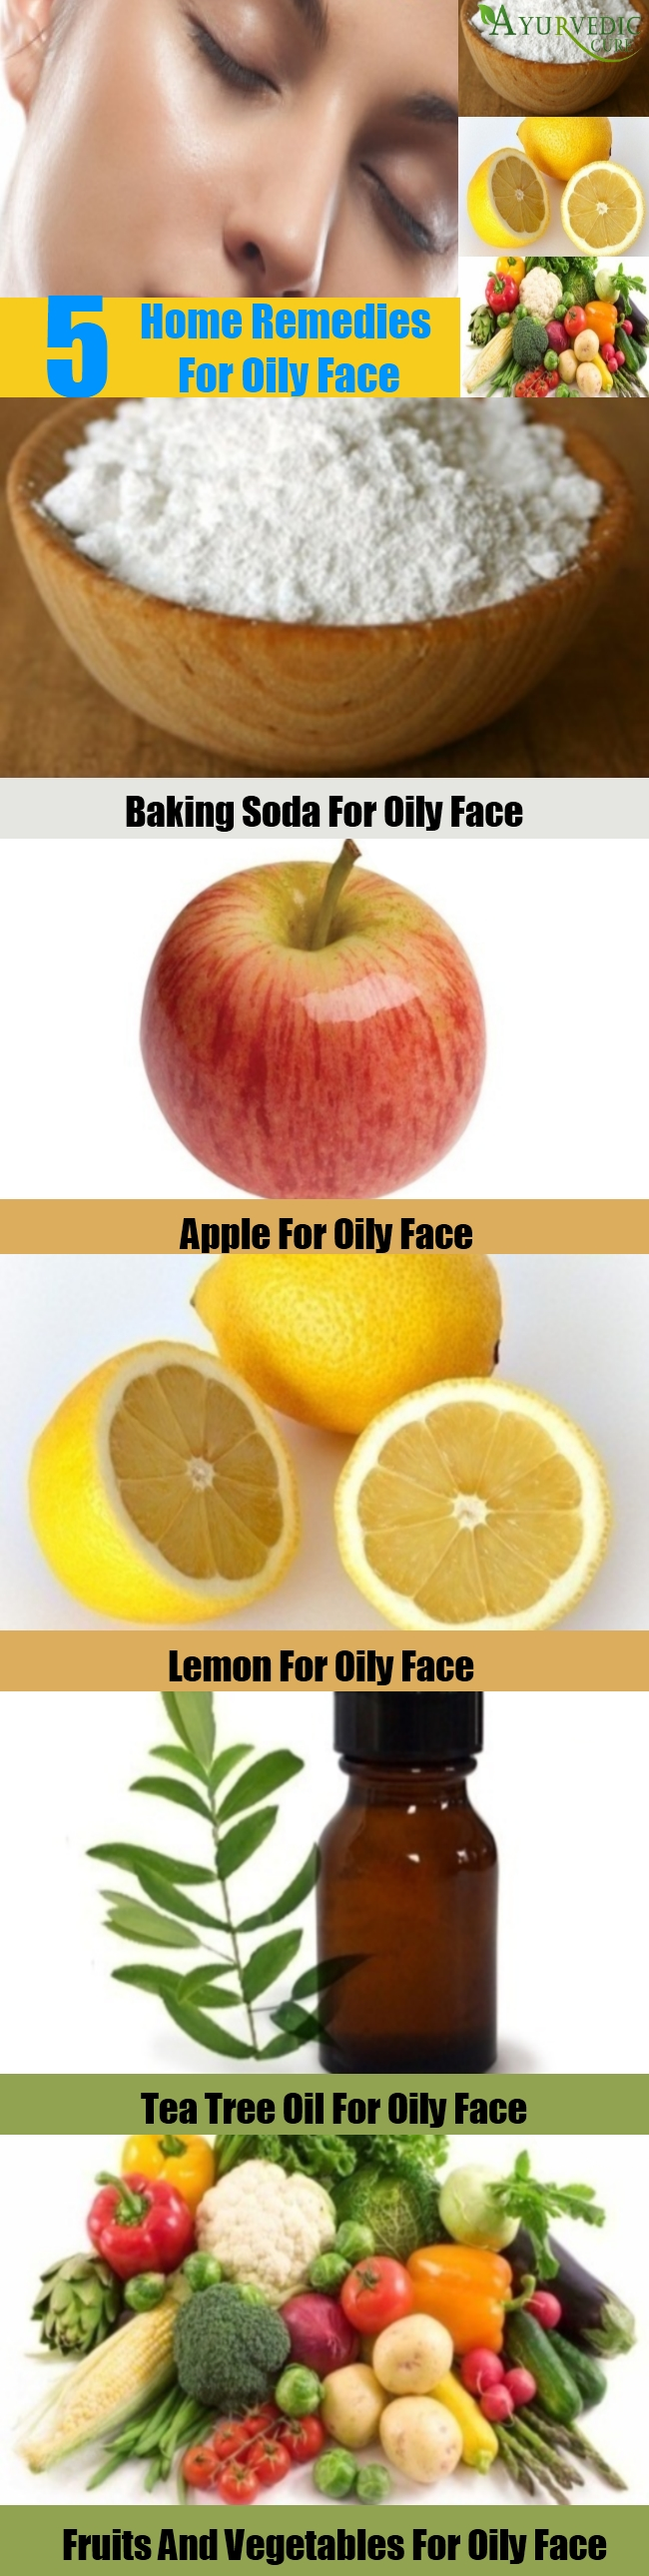 Top 5 Home Remedies For Oily Face